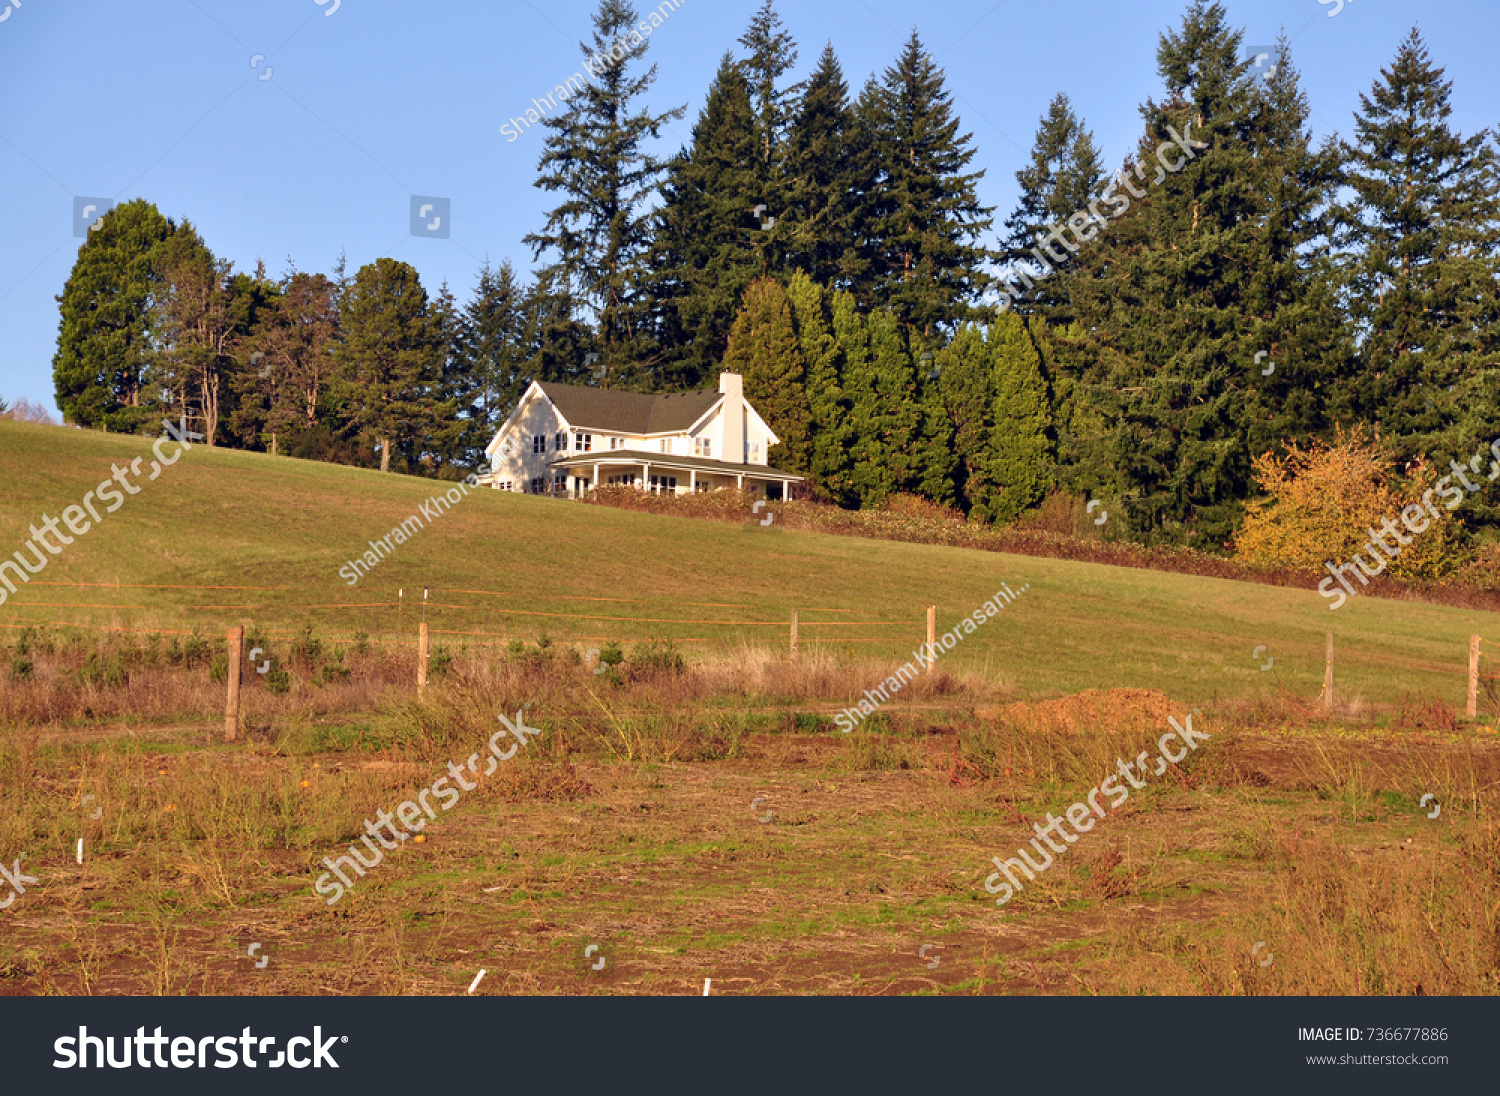 A Beautiful Scene Of Traditional American Farmhouse And Surrounded Landscape Grass Fields On